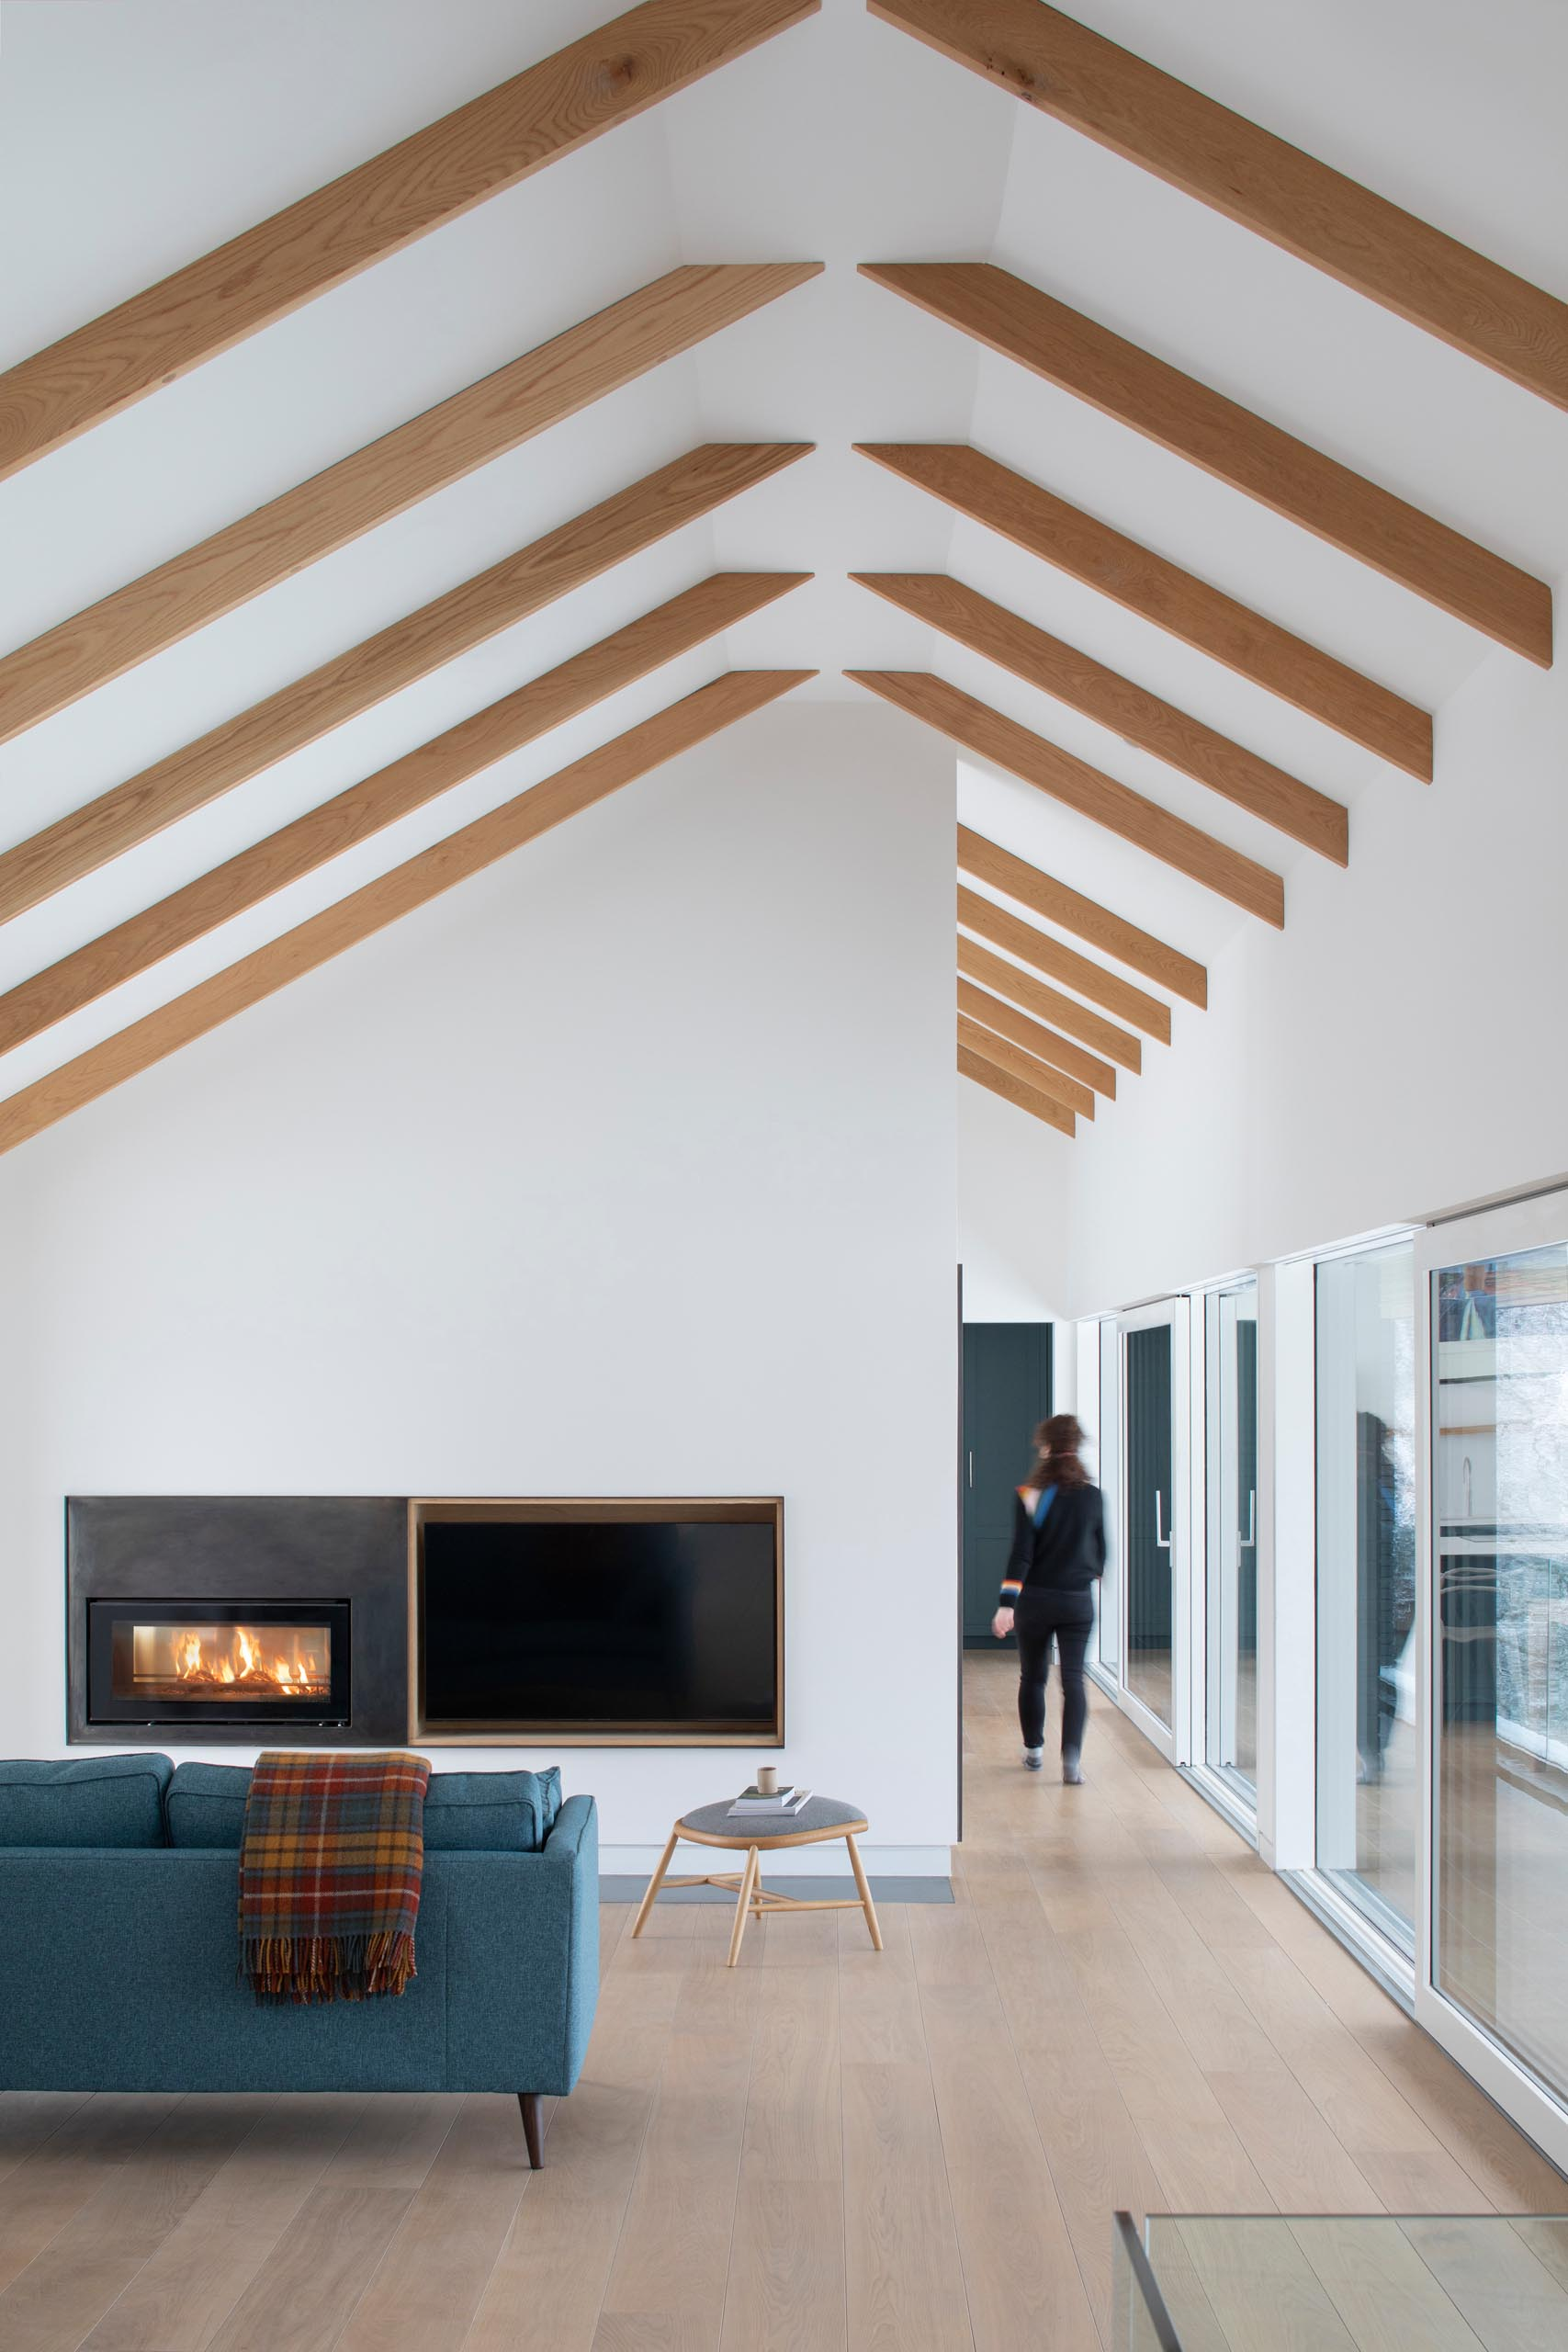 A modern living room with a steel fireplace surround and a wood-lined niche for a television.